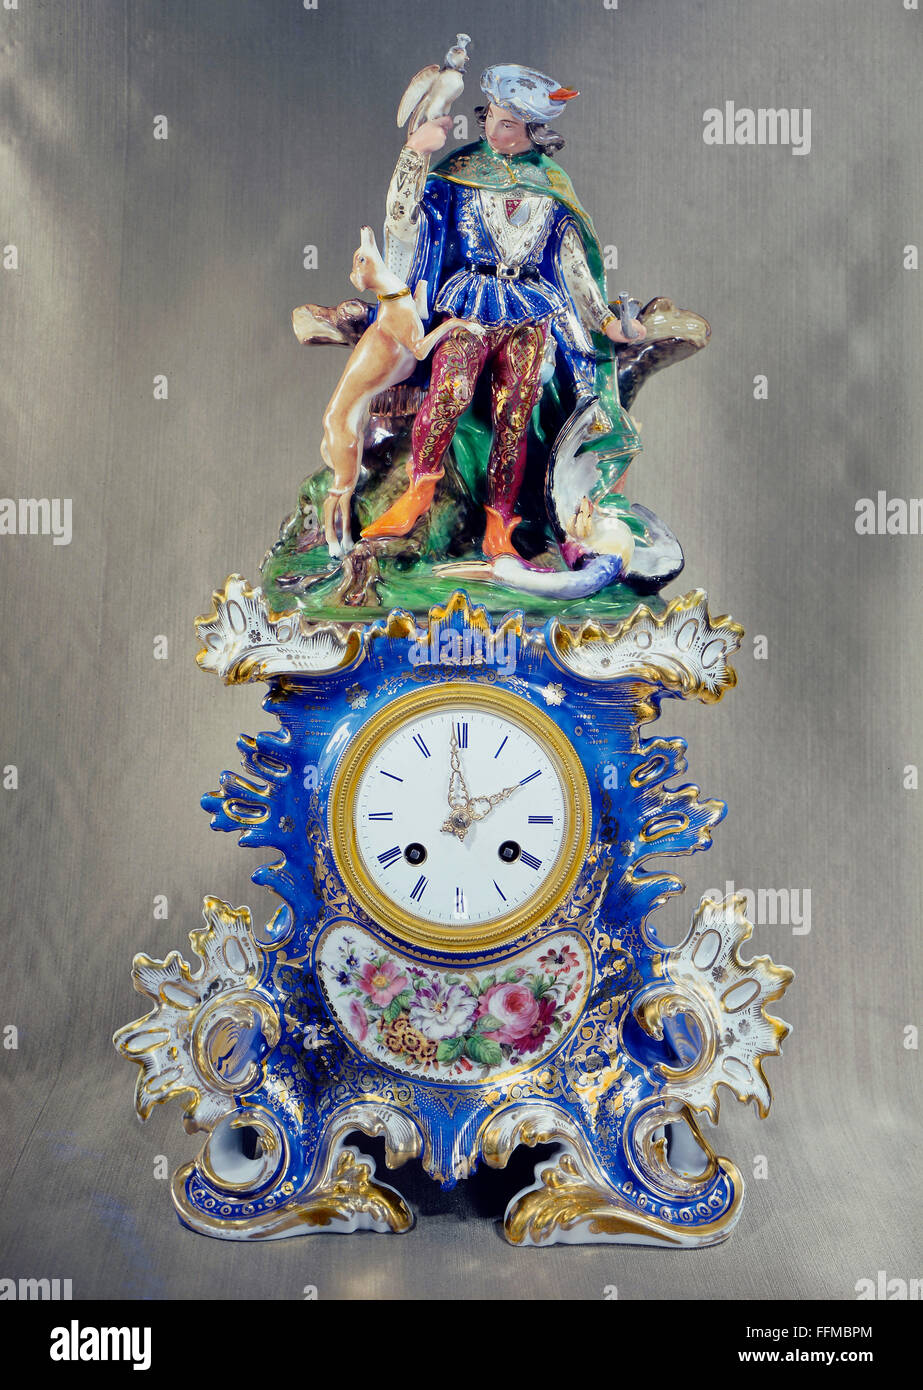 clocks, bracket clock, falconer with hunting dog, porcelain, painted, Sevres, Paris, circa 1860, Additional-Rights Stock Photo